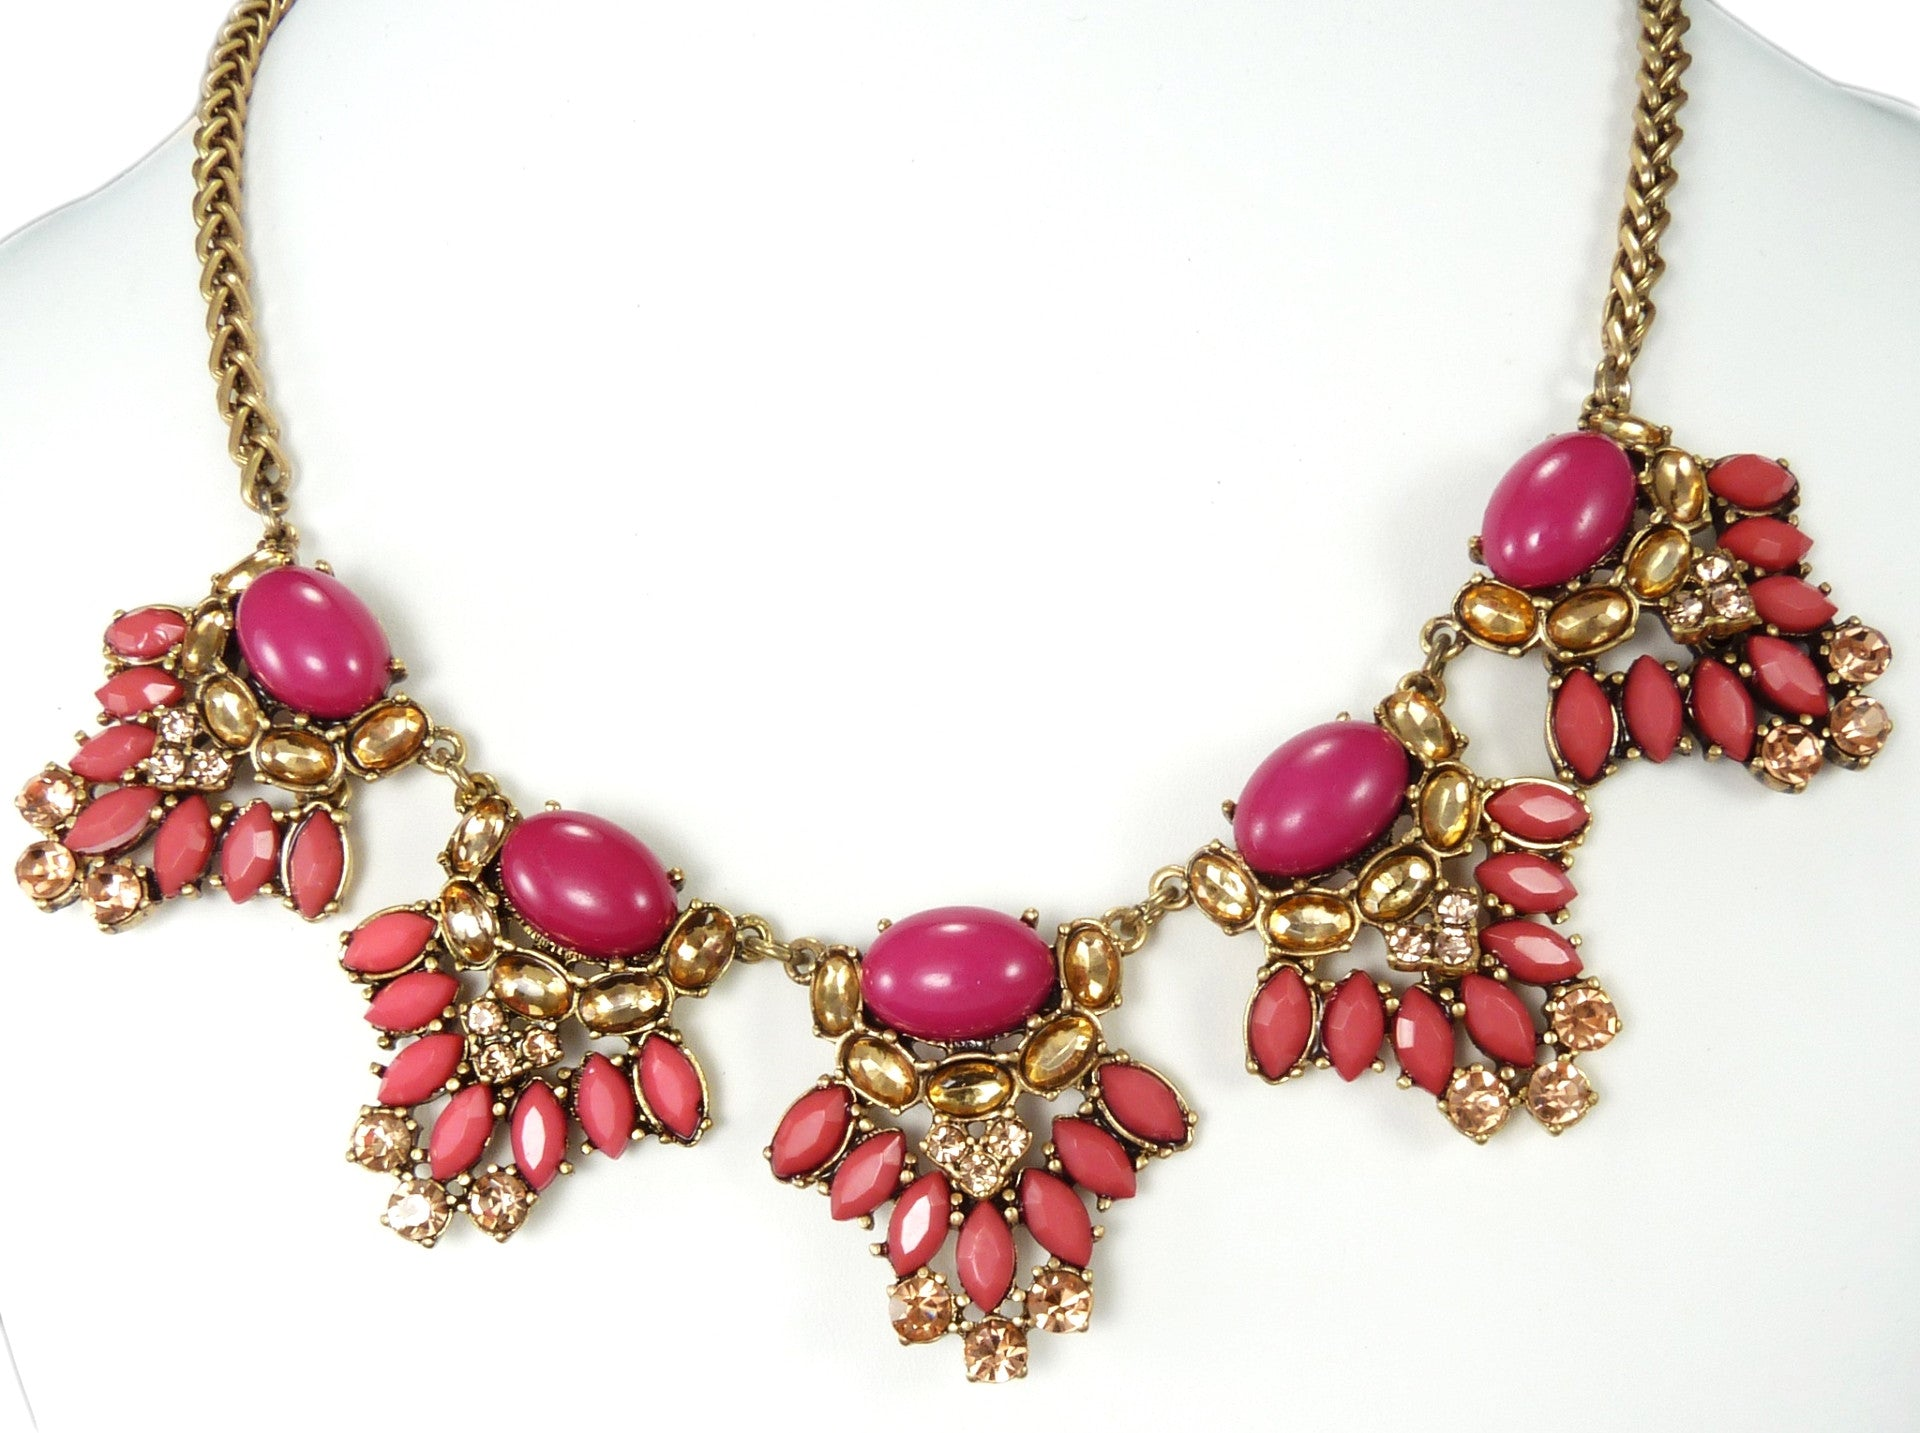 Pink Glamour Necklace Vanett $20